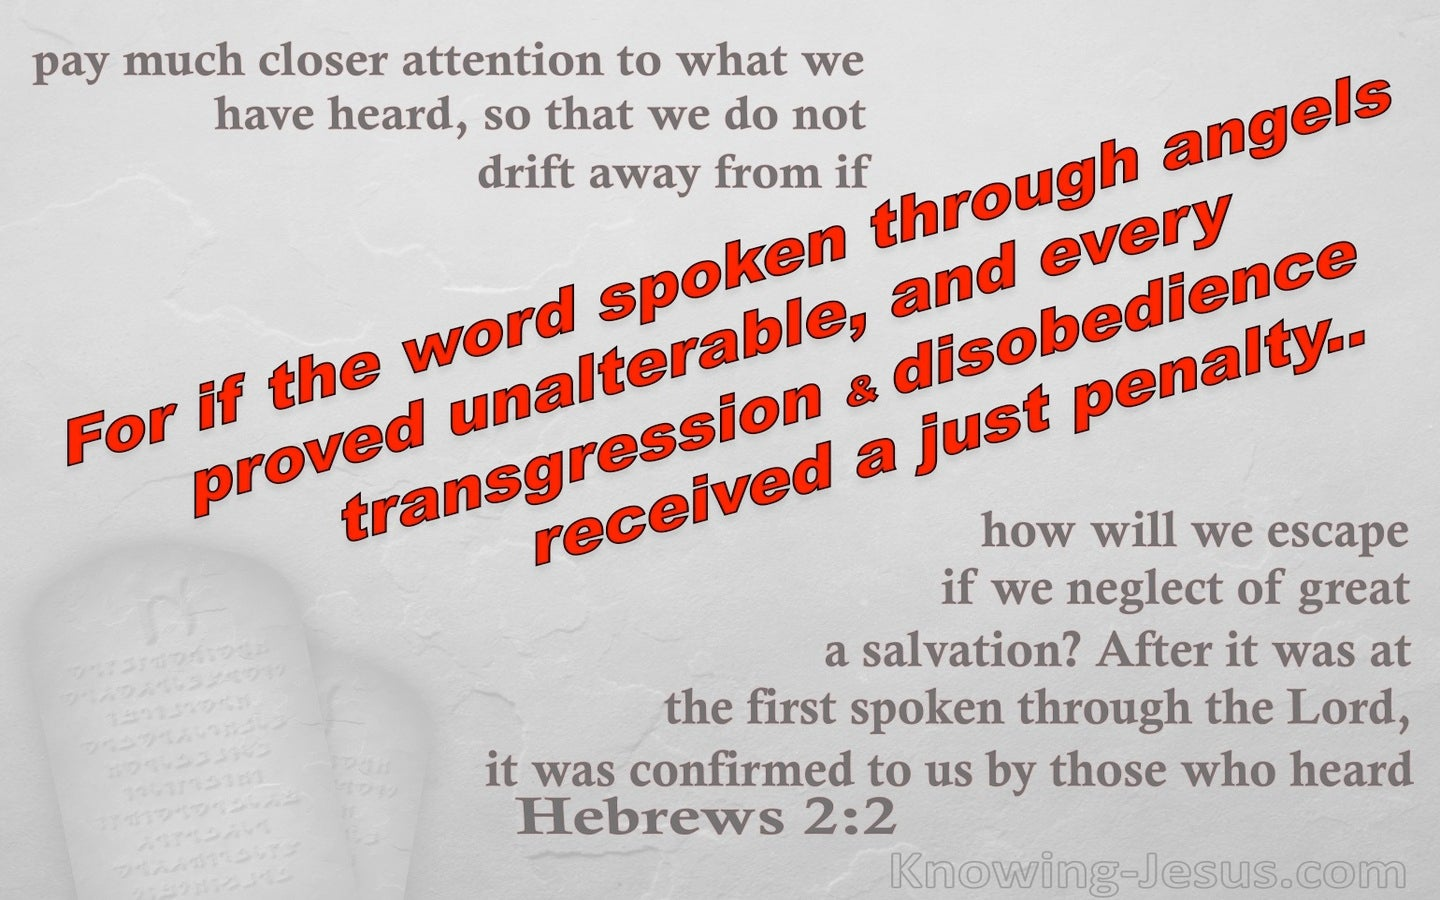 Hebrews 2:2 The Word Spoken Through Angels (red)